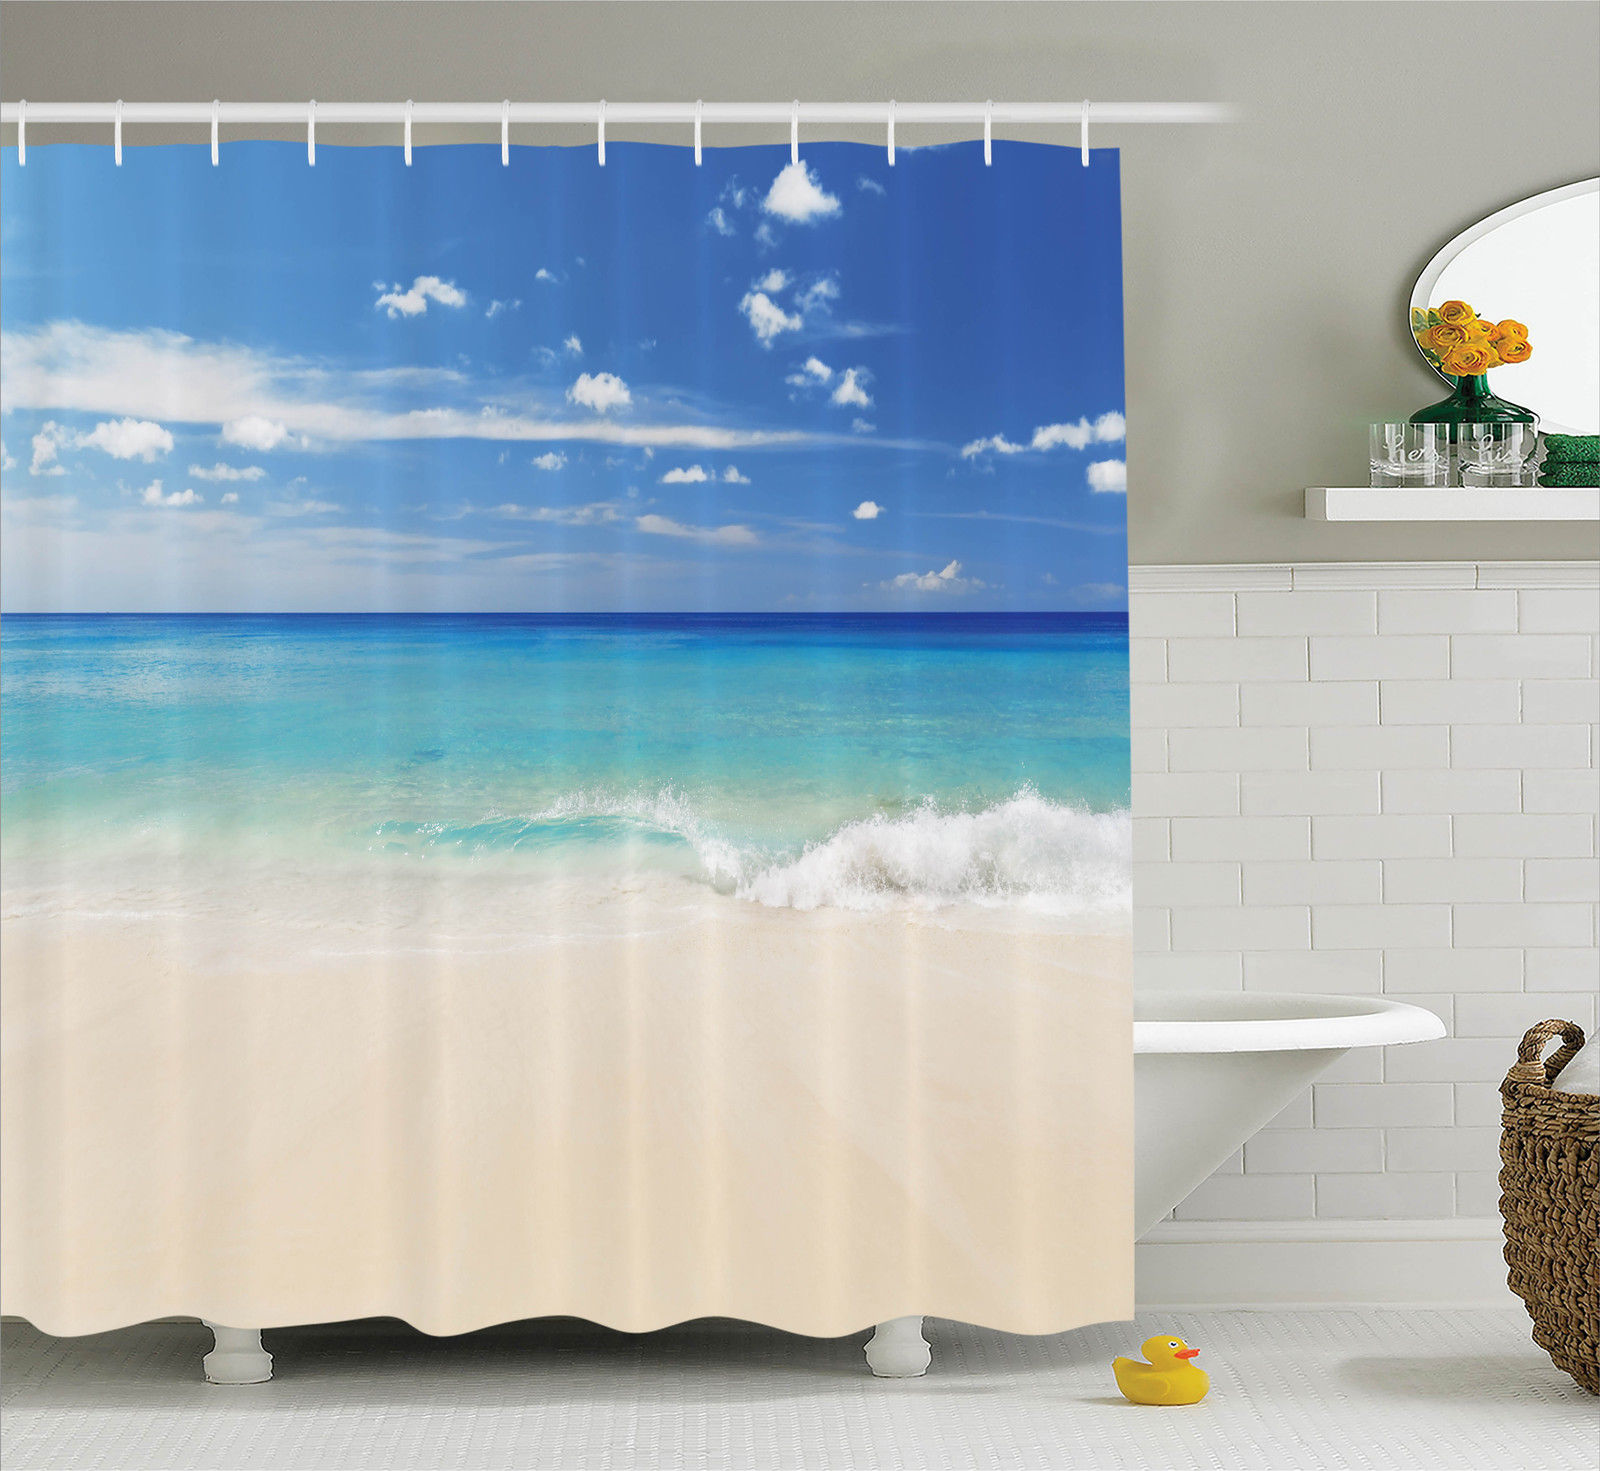 Ocean Decor Shower Curtain Set, Tropical Haven Style Sandy Shore And Sea  With Waves Escape